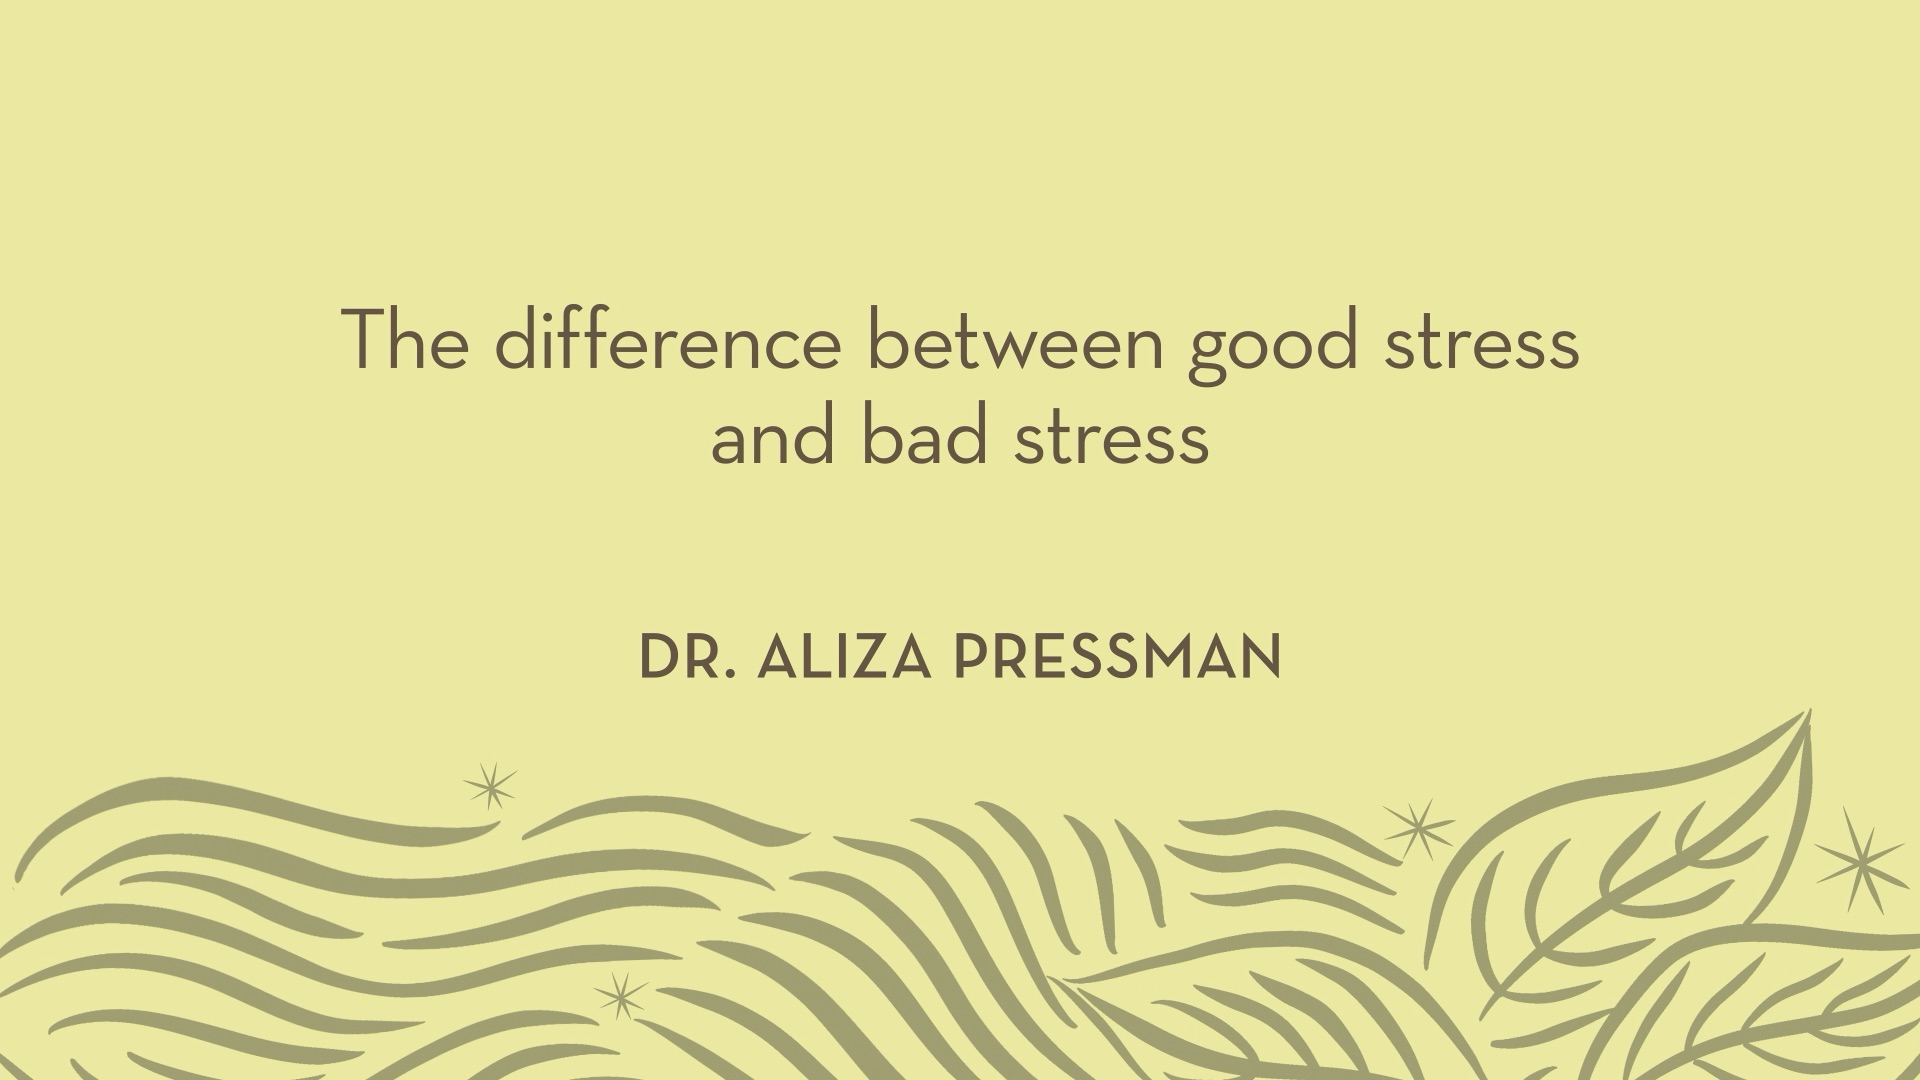 Dr. Pressman | The difference between good stress and bad stress